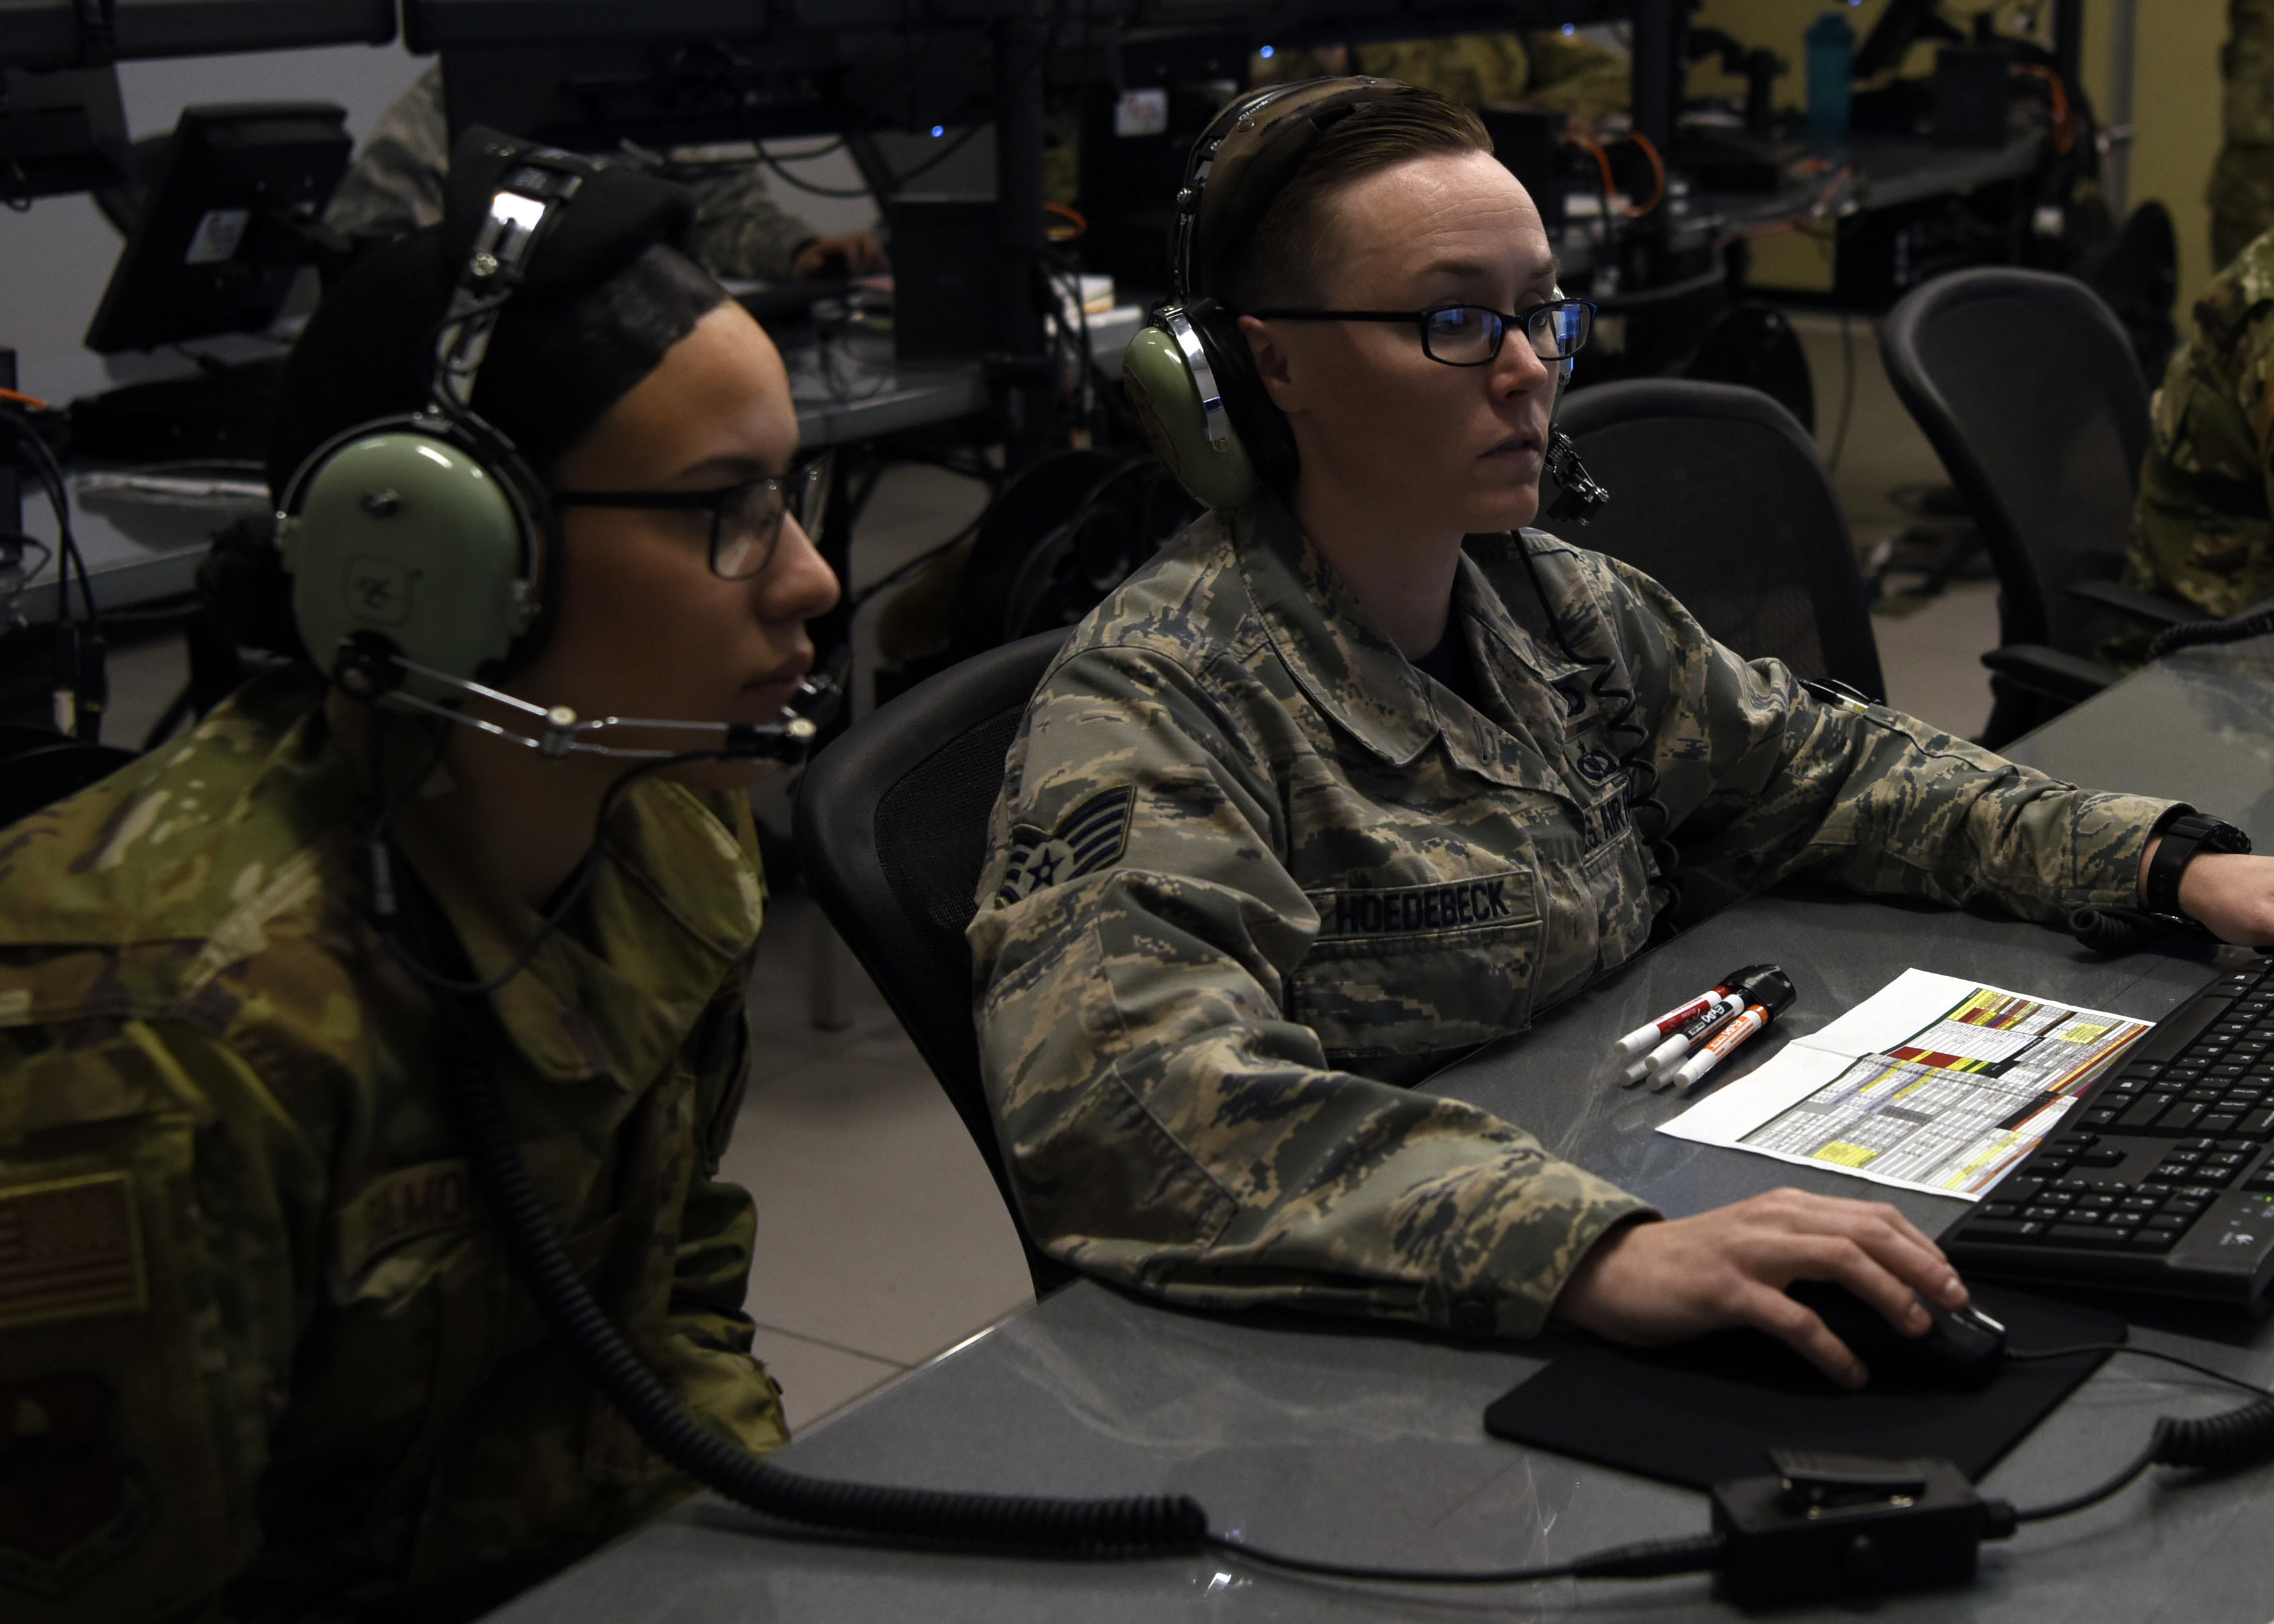 Staff Sgt. Amber Hoedebeck, right, controls an air fight as Airman Jaeda Gilmore simulates friendly fire during the first all-female Command and Control Battle Management Operations team mission on March 22, 2019, at Luke Air Force Base, Ariz. (Airman 1st Class Zoie Cox/U.S. Air Force)